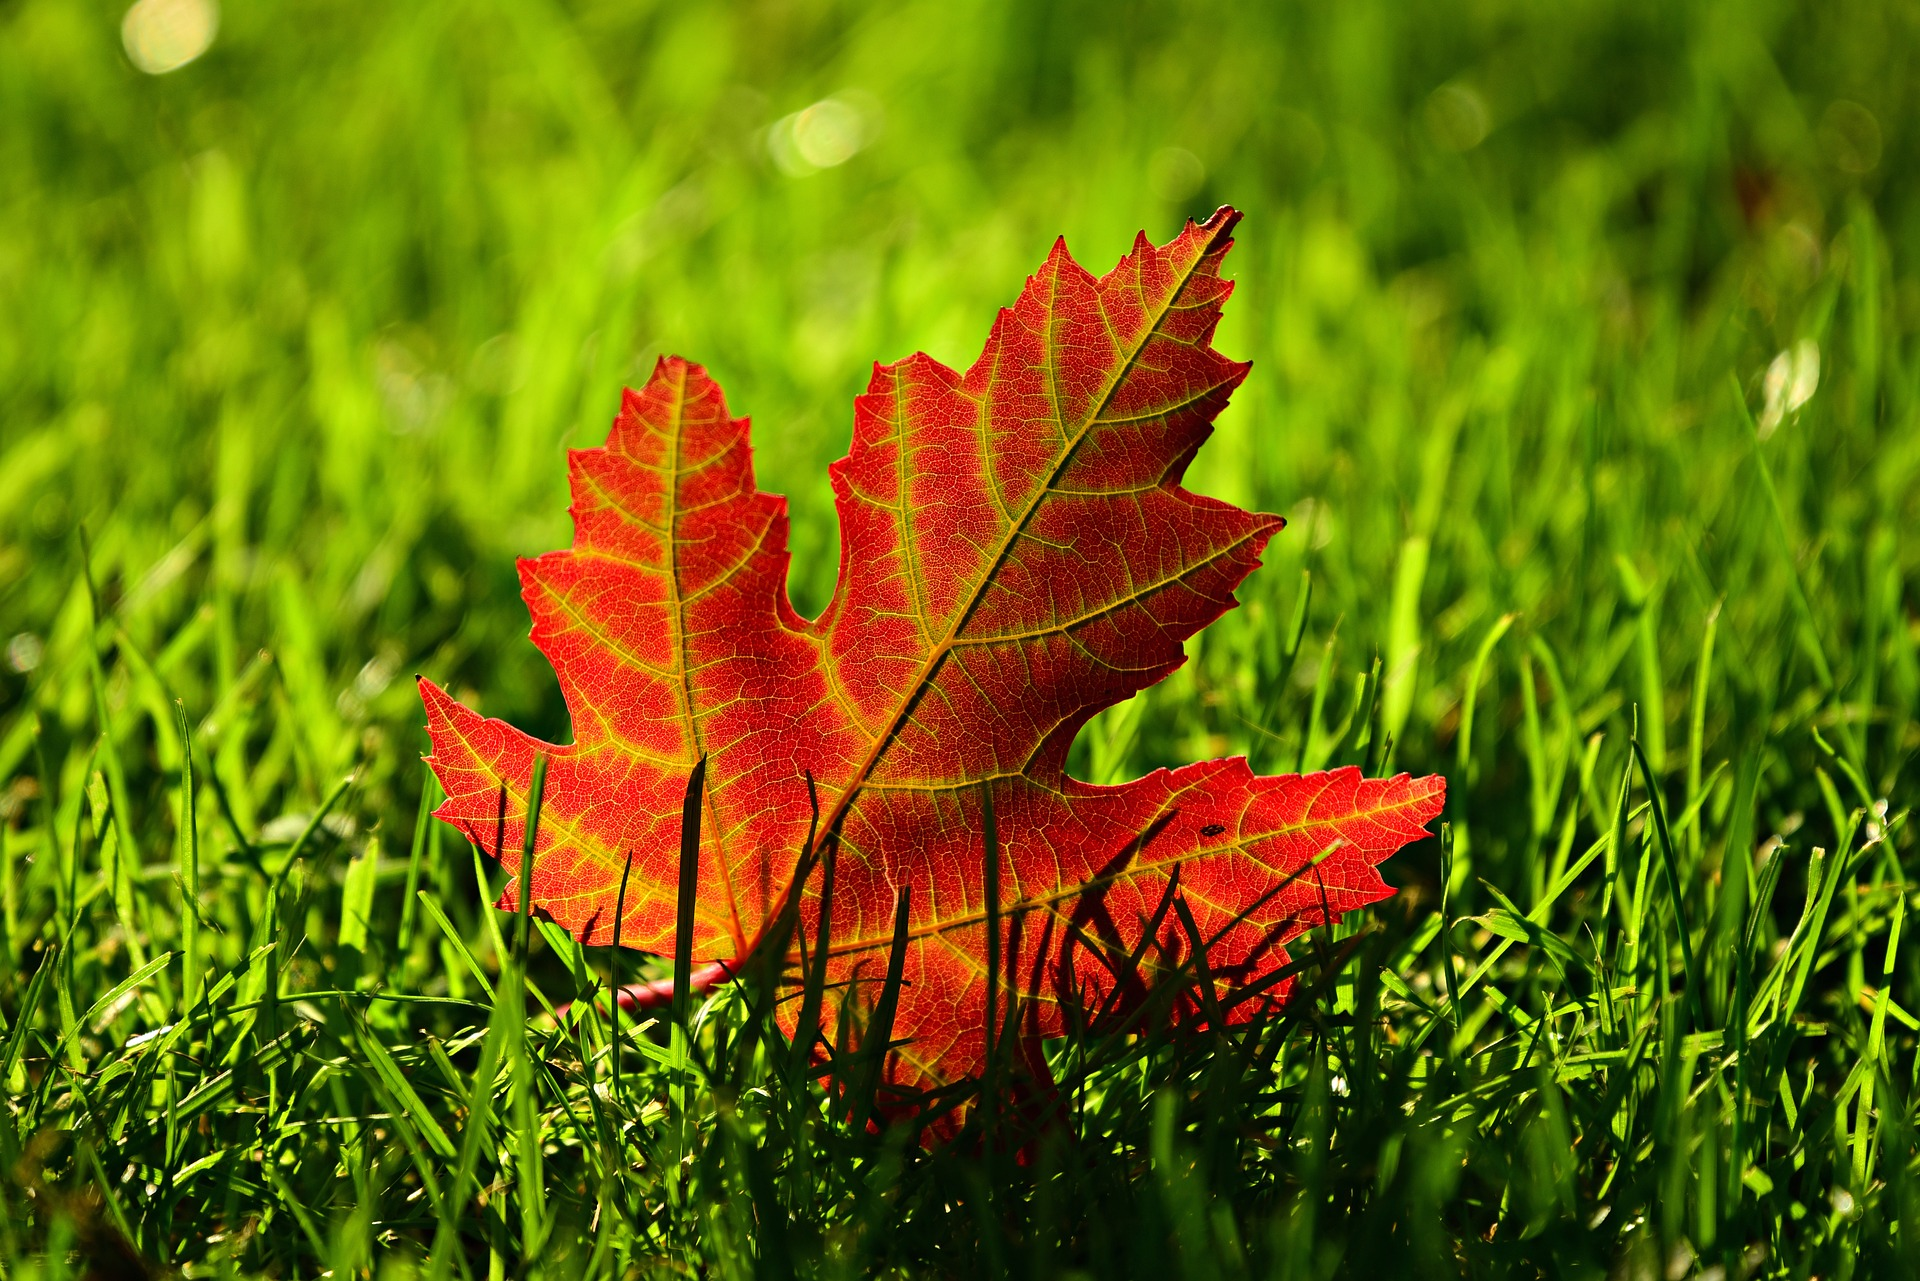 Closeup of a single red maple leaf upright in the grass